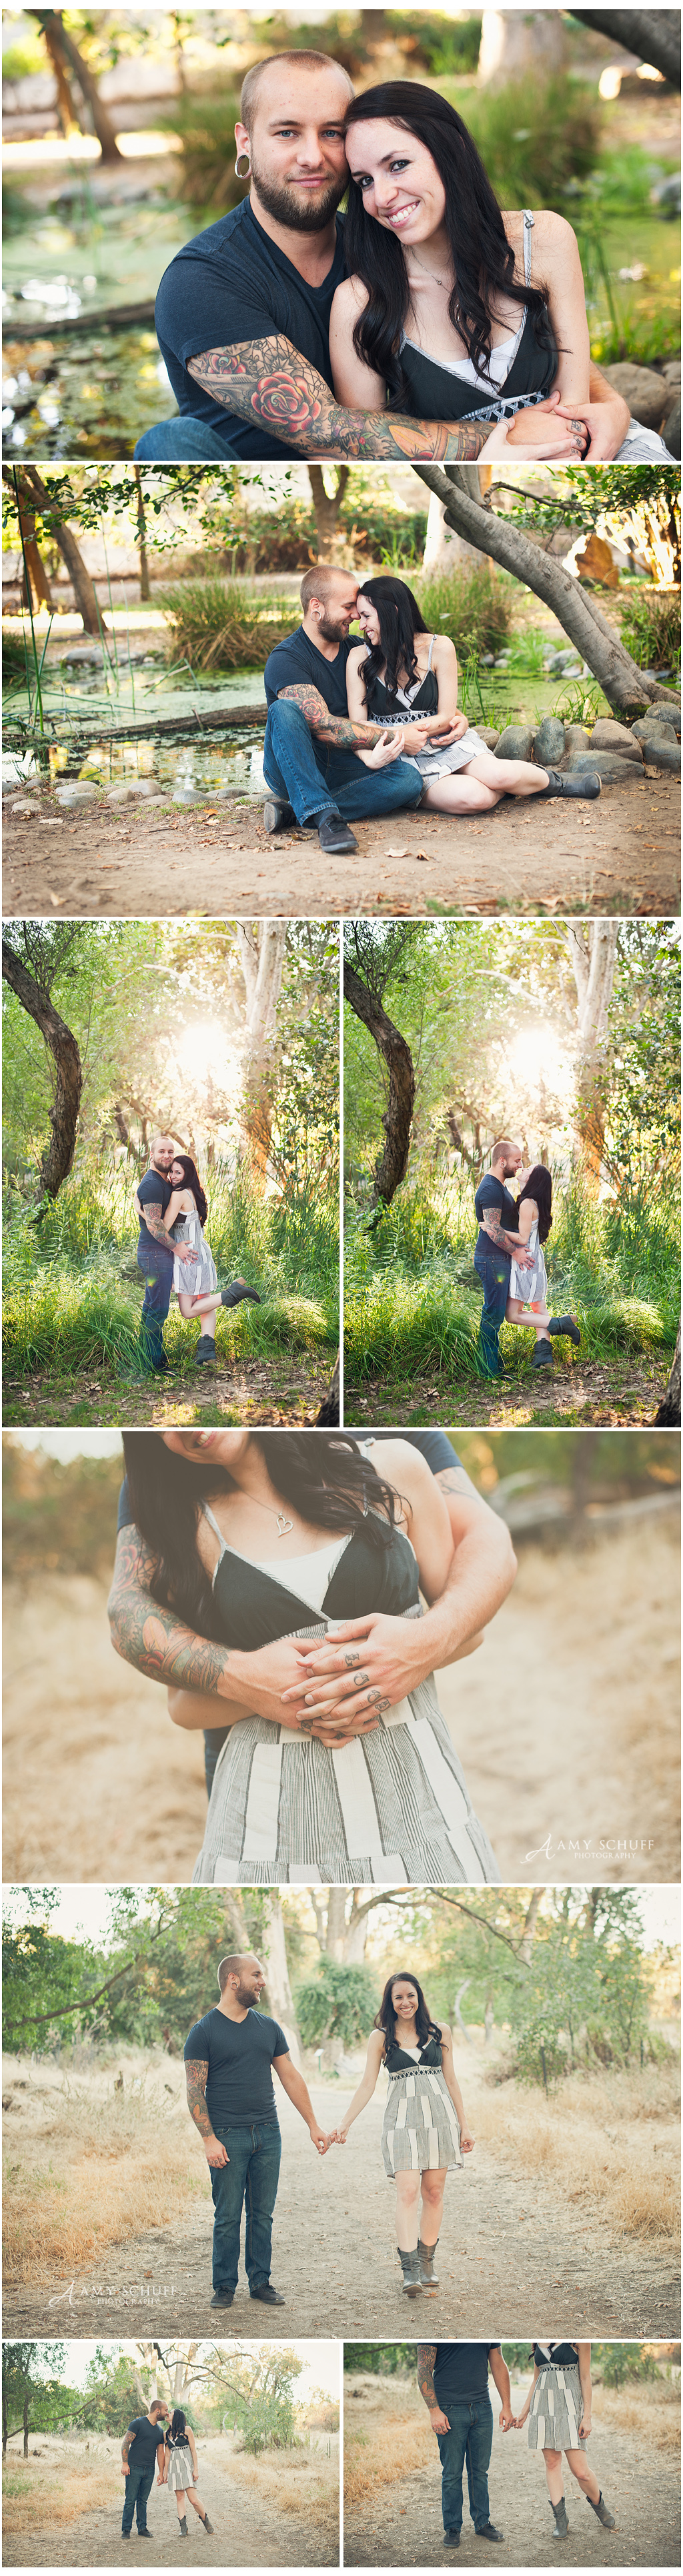 Amy Schuff - Sacramento Engagement Photographer 2